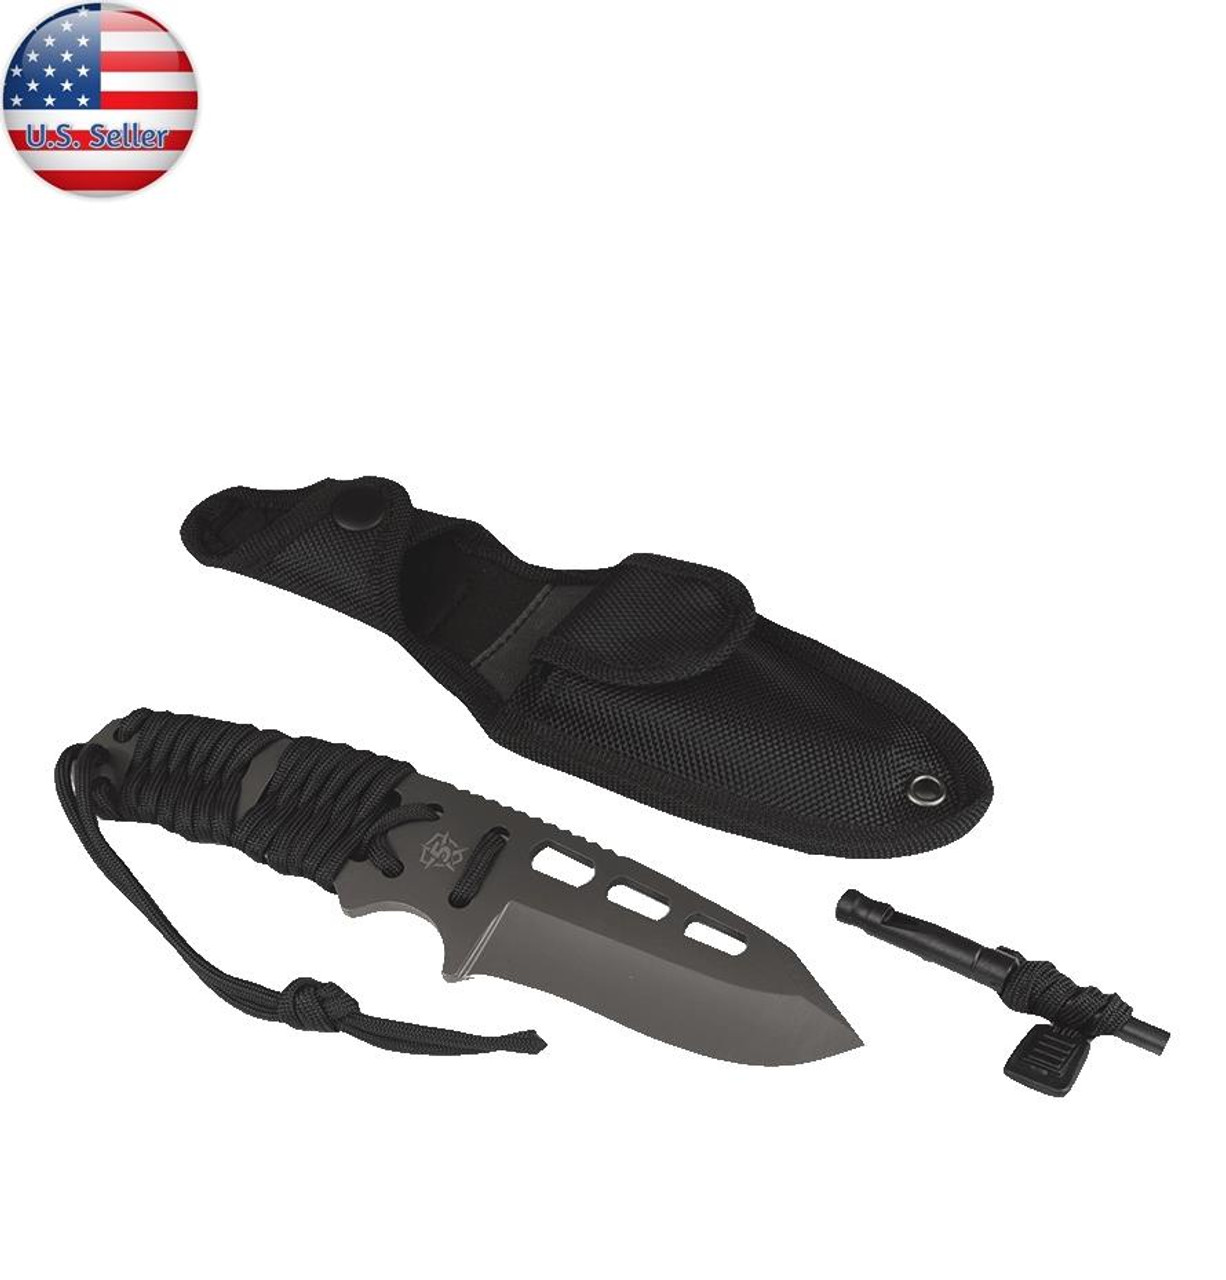 5ive Star Gear T2XL Survival Paracord Knife and fire starter, Black Model 5655